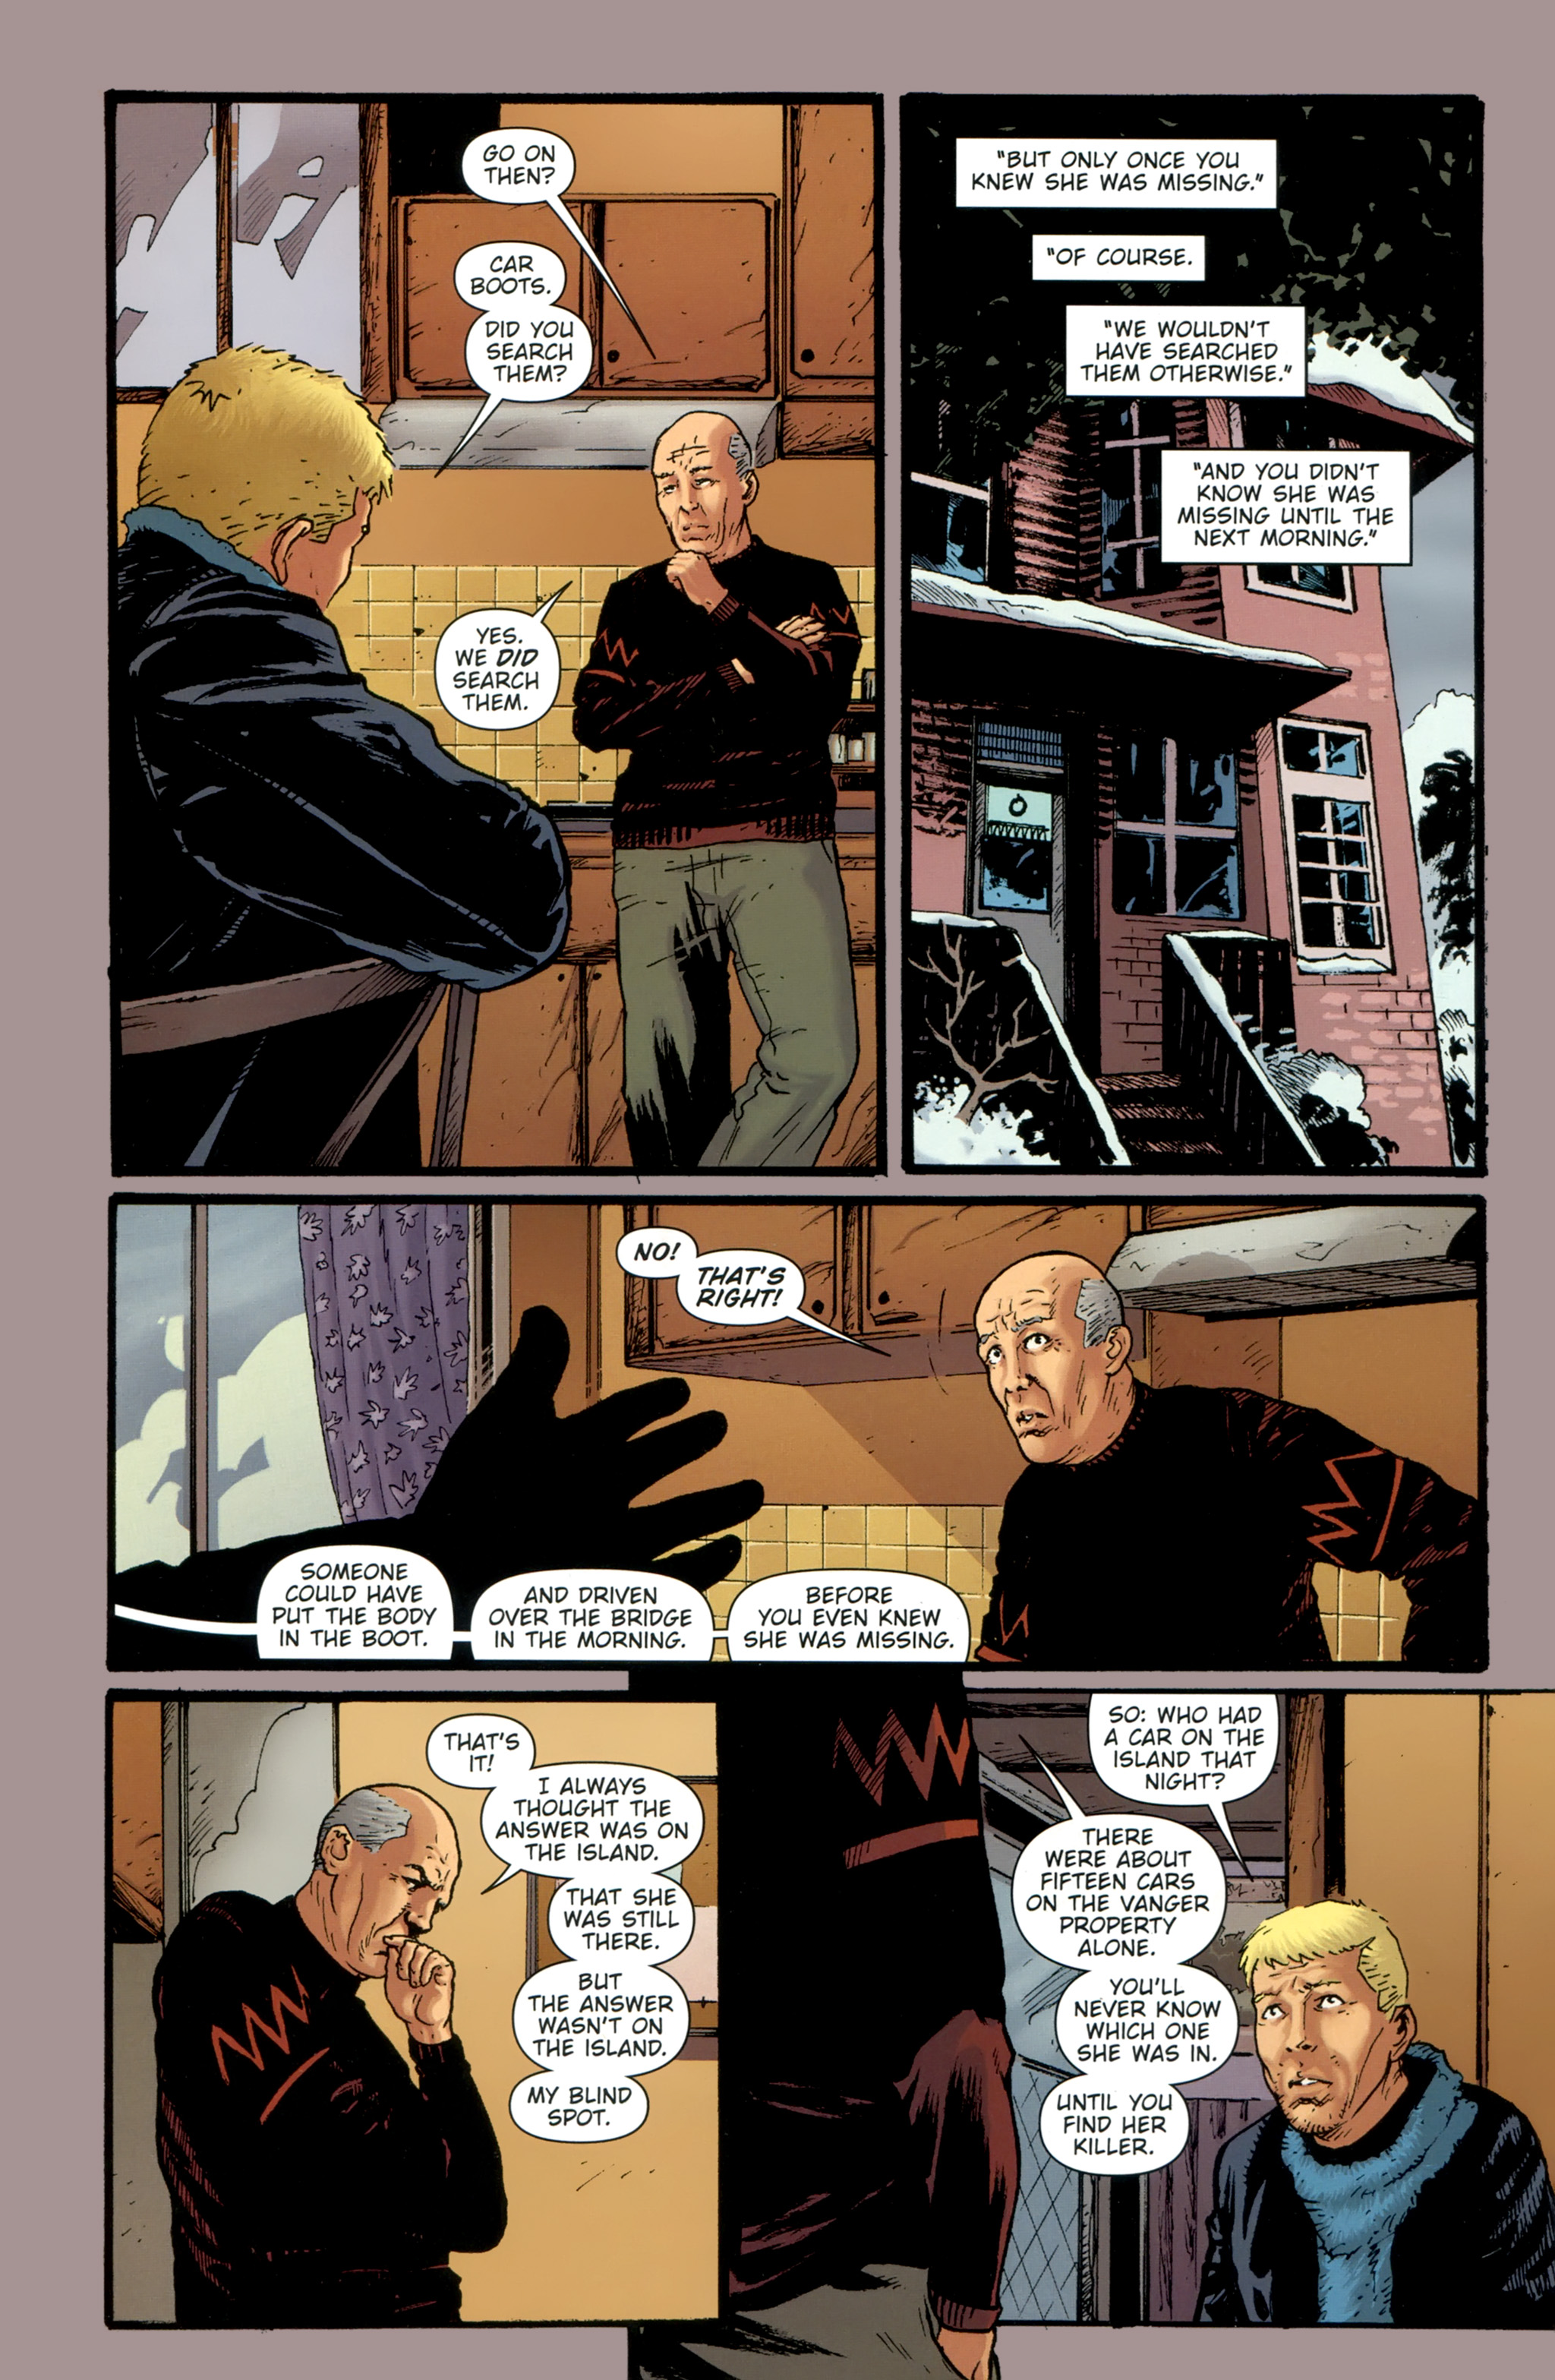 Read online The Girl With the Dragon Tattoo comic -  Issue # TPB 1 - 139